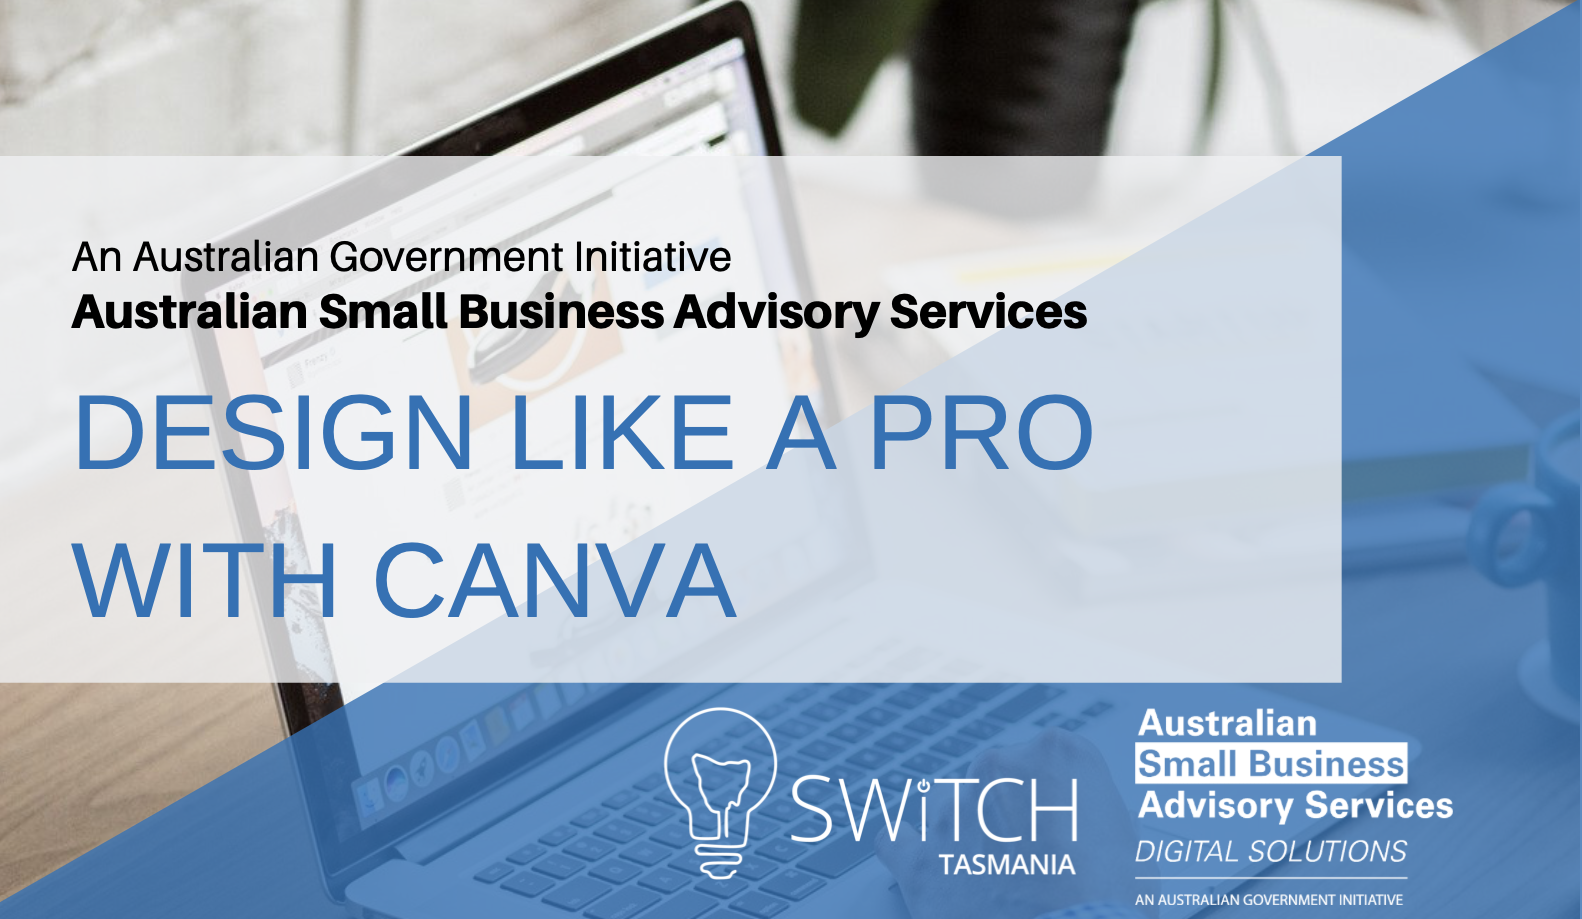 Design like a Pro with Canva I King Island